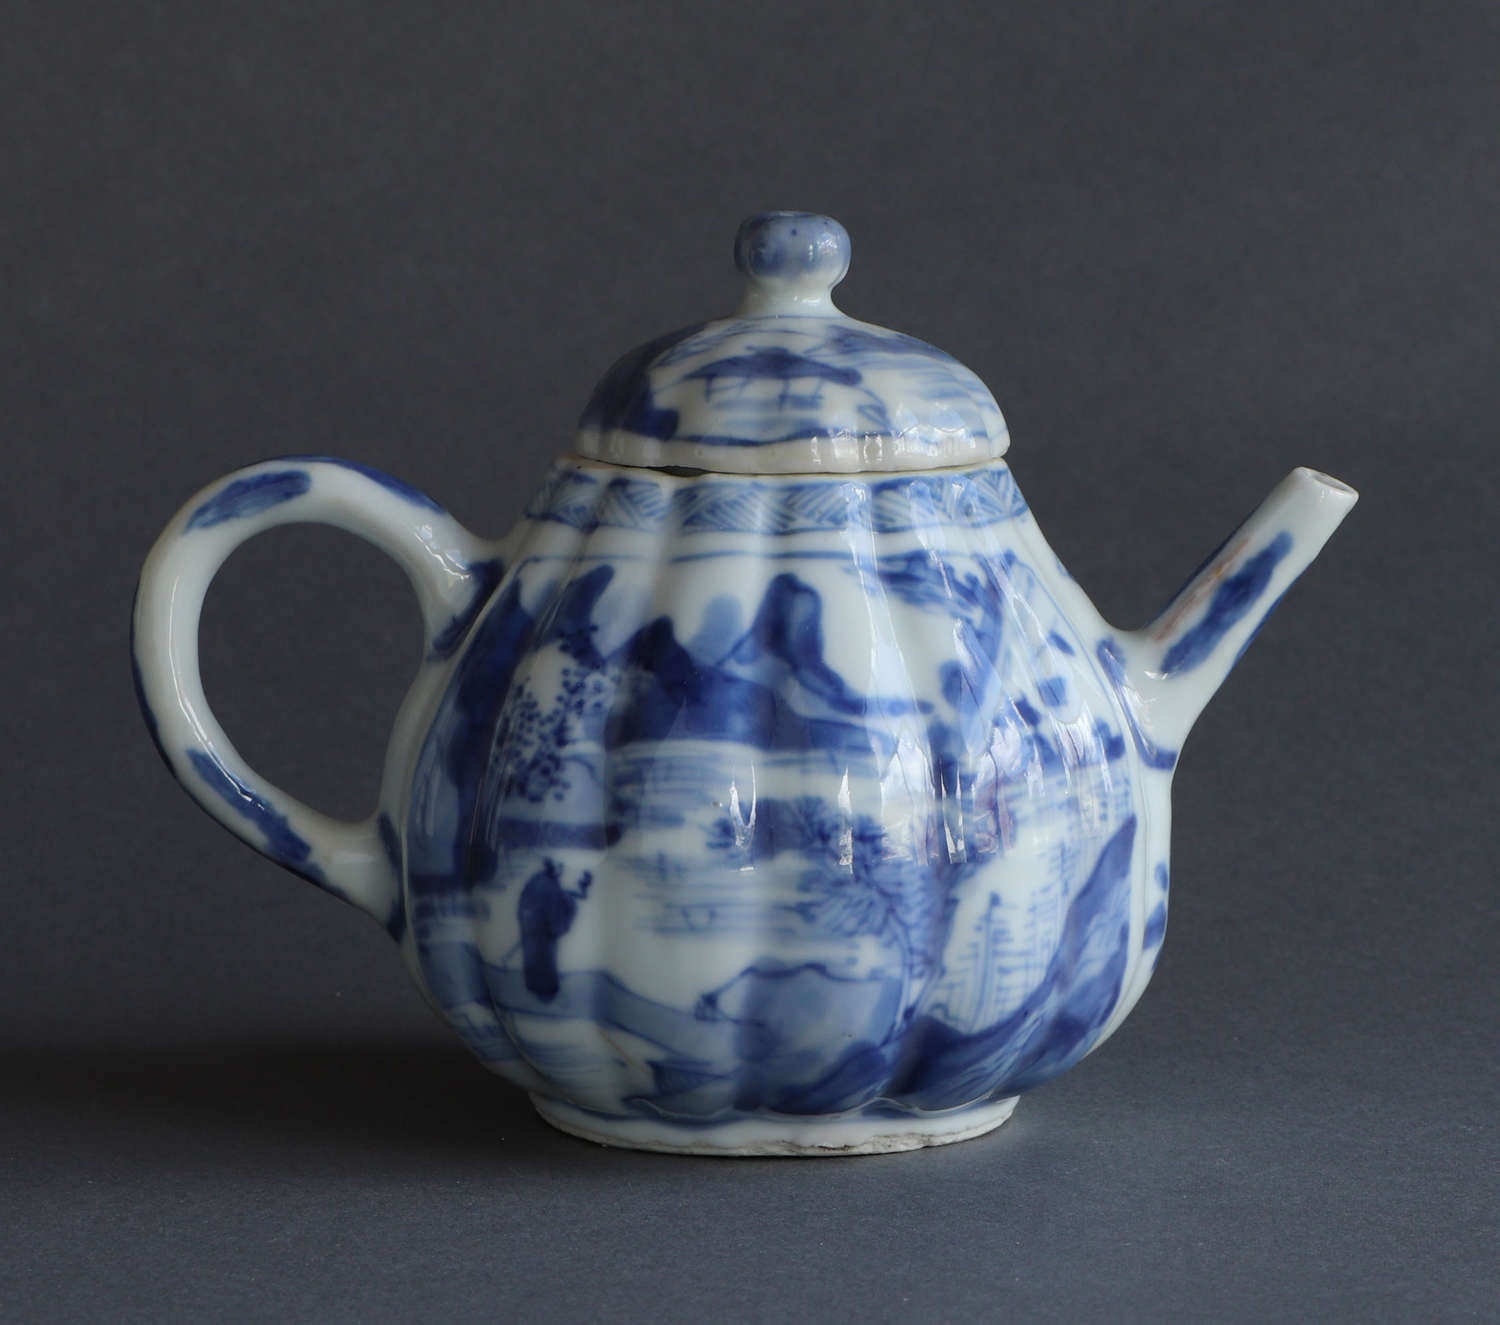 A Chinese melon-shaped teapot and cover, Kangxi or Yongzheng